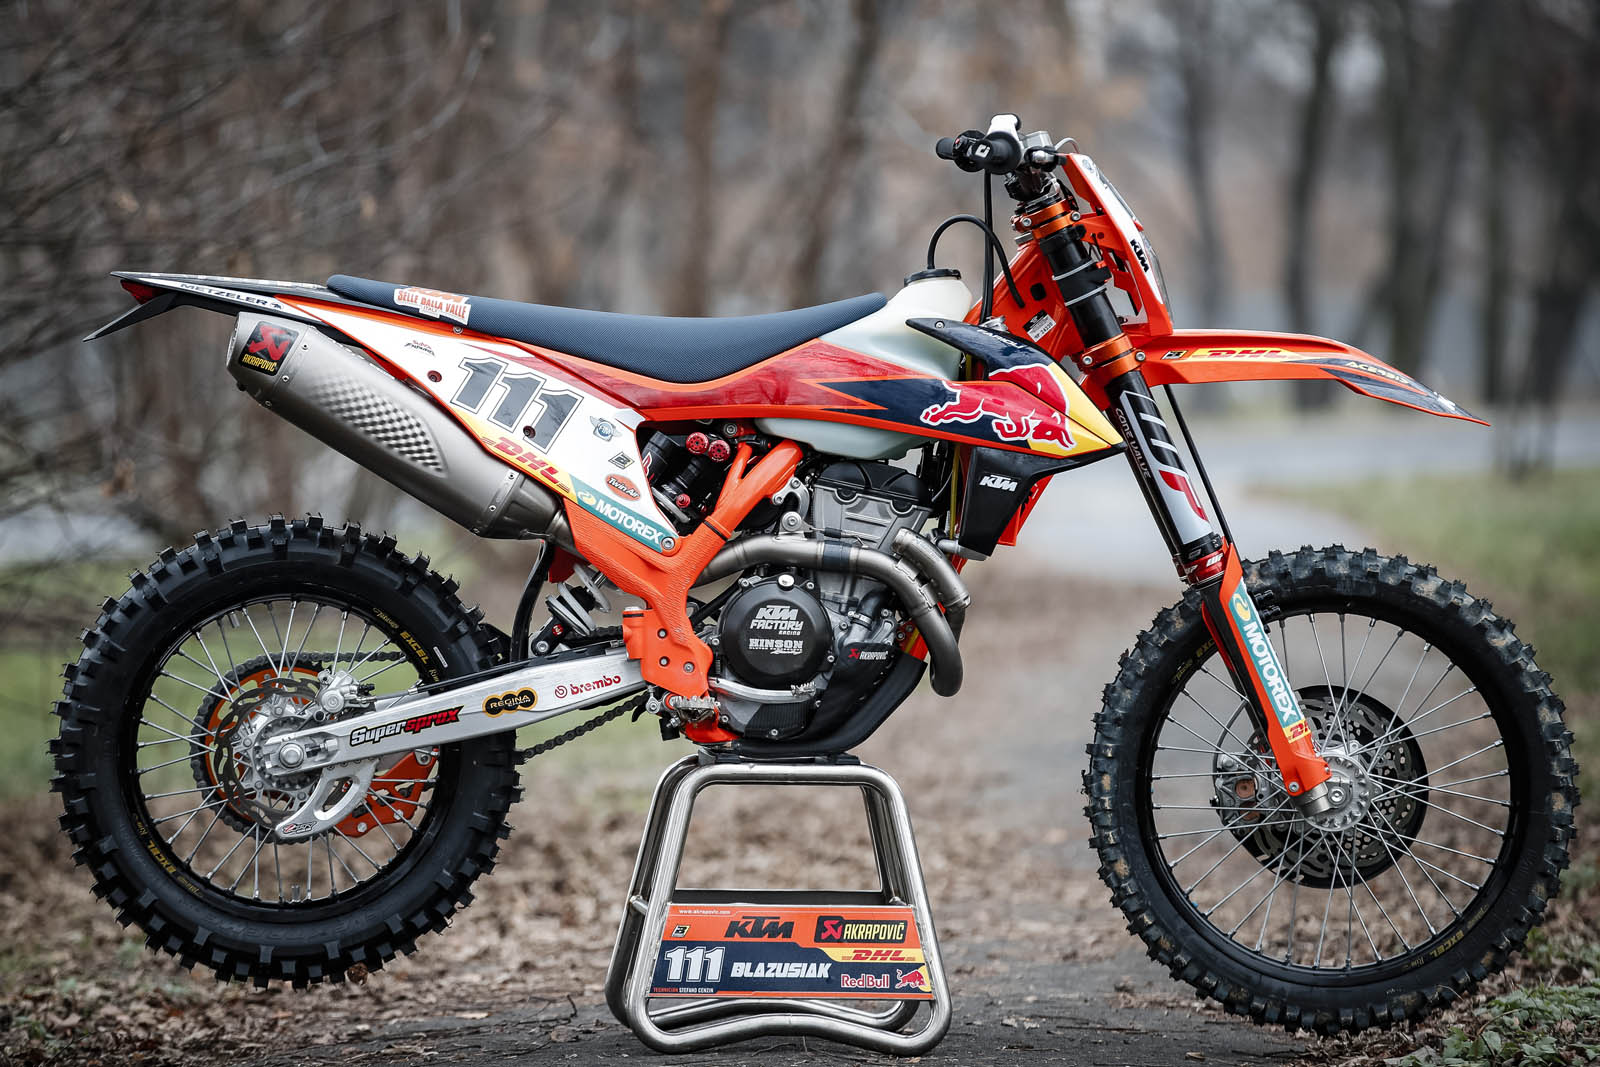 My Ride: Taddy Blazusiak's 2020 SuperEnduro KTM 350 EXC-F